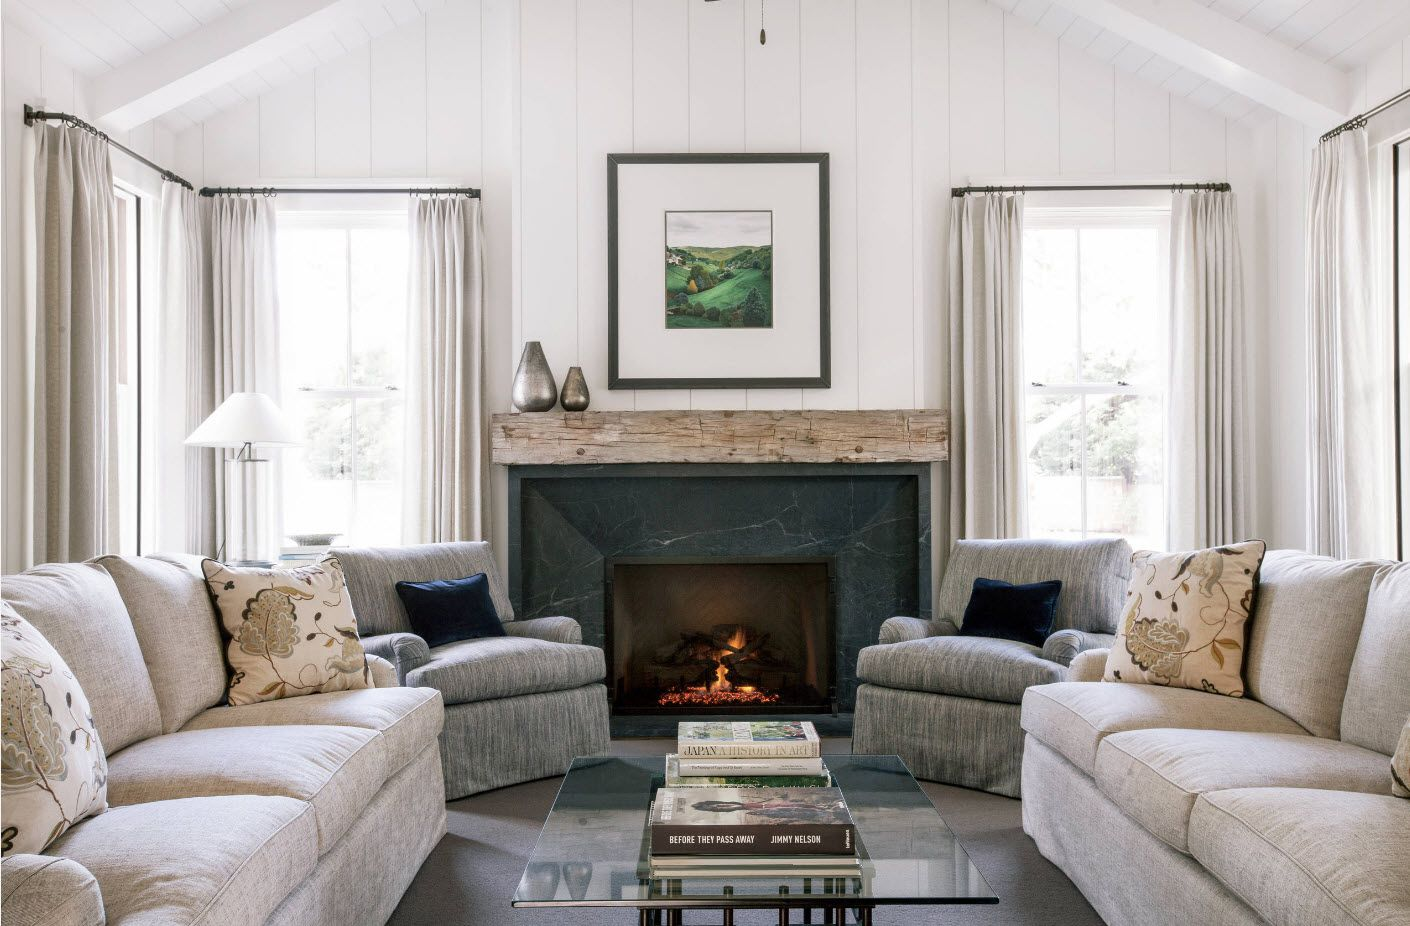 Classic setting in the room with white decoration and fireplace